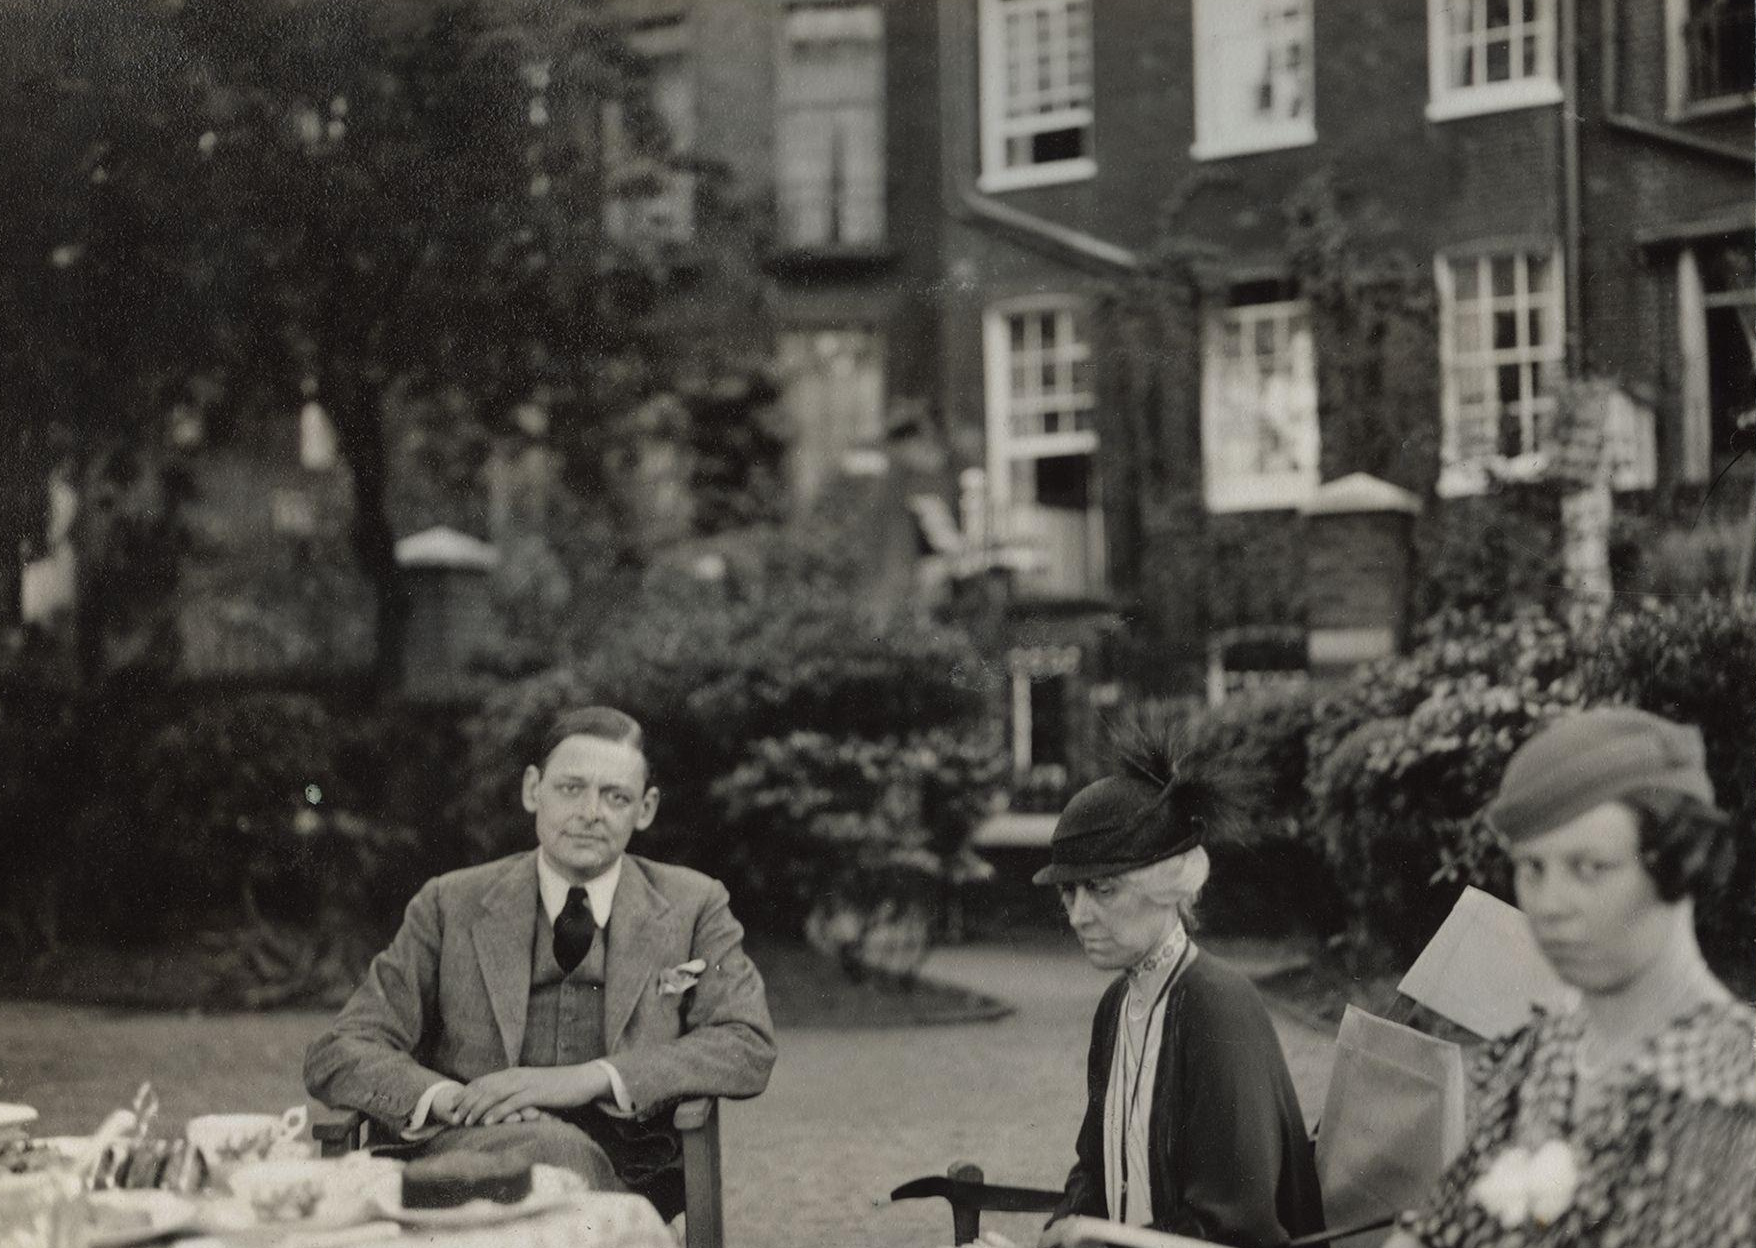 T. S. Eliot with his sister and cousin in 1934. Photograph by Lady Ottoline Morrell.